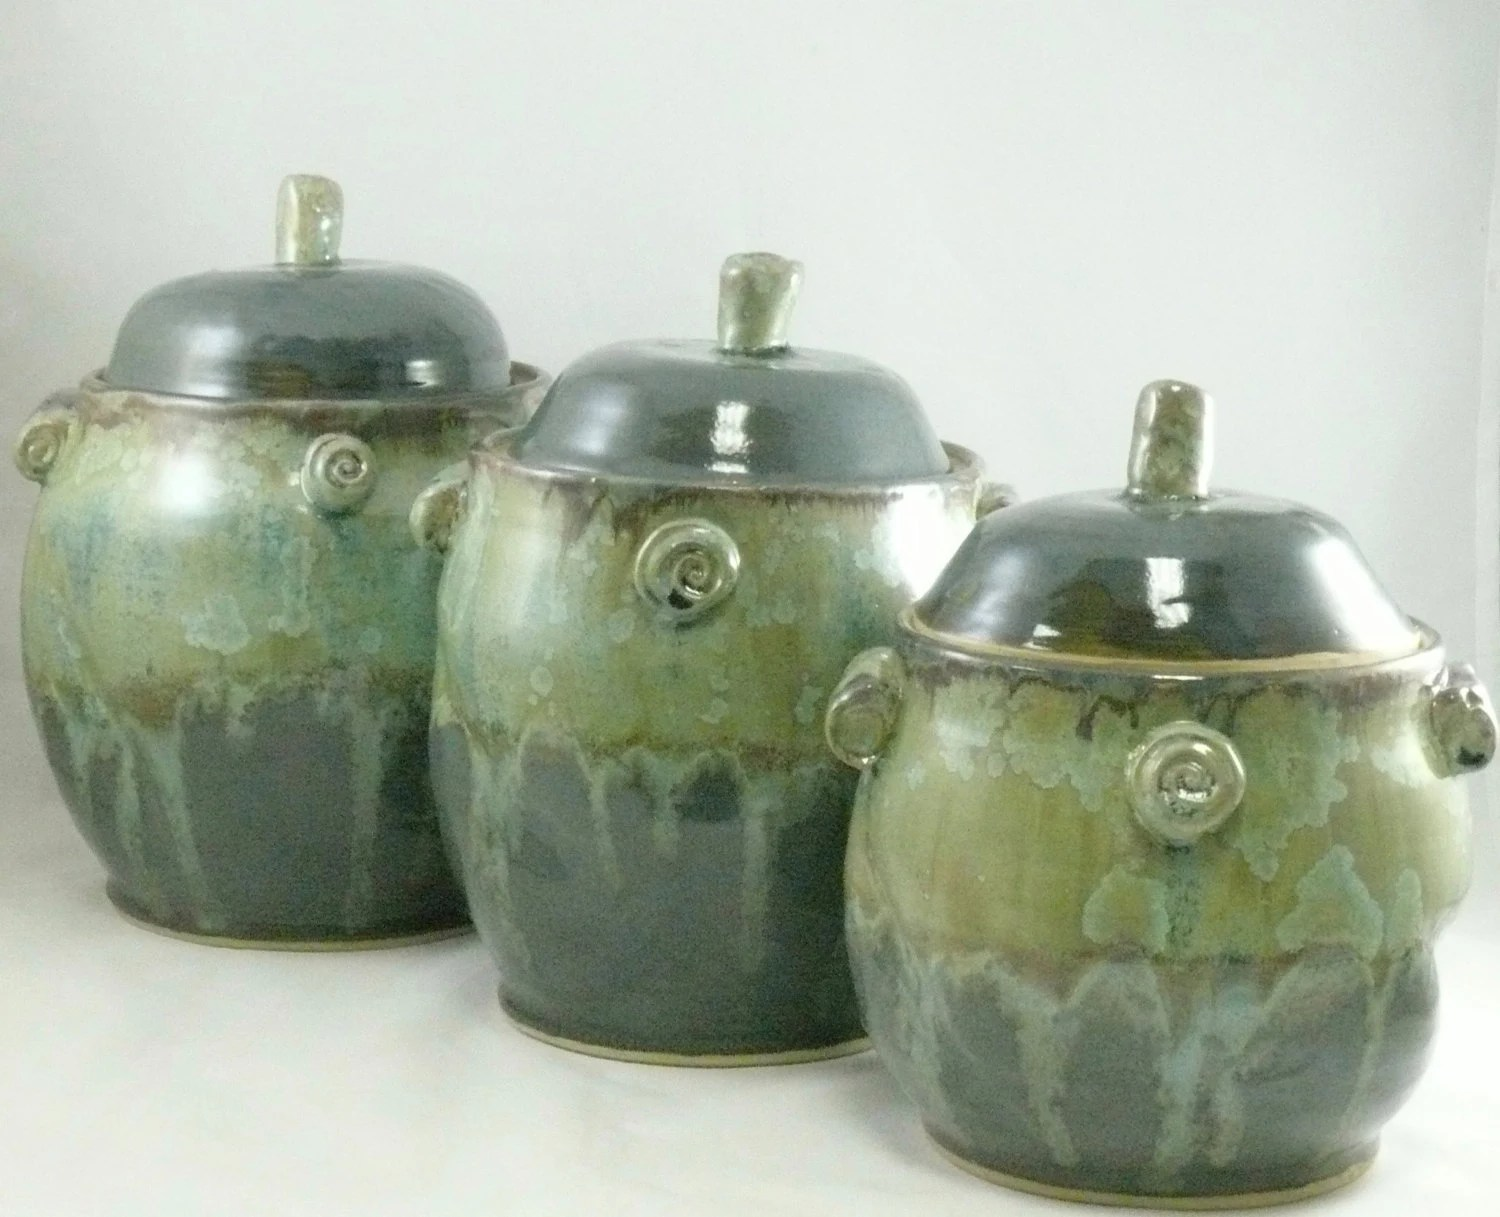 Ceramic Cookie Jar Sets Large Kitchen Ceramic Canisters Set Cookie Jar Coffee